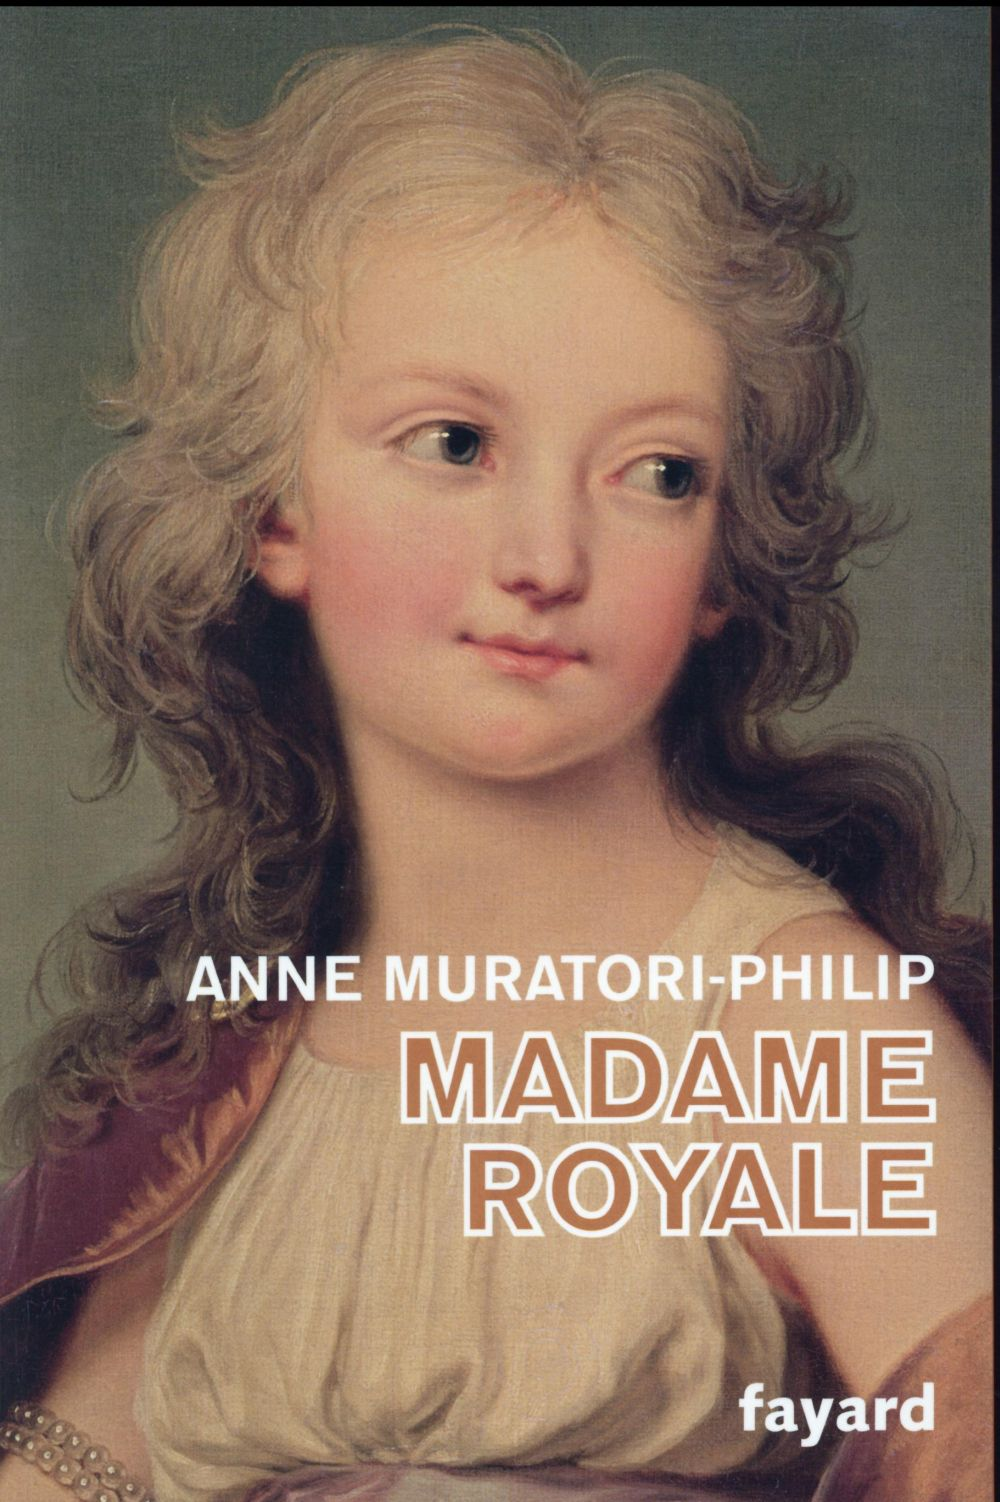 Muratori-Philip Anne - MADAME ROYALE